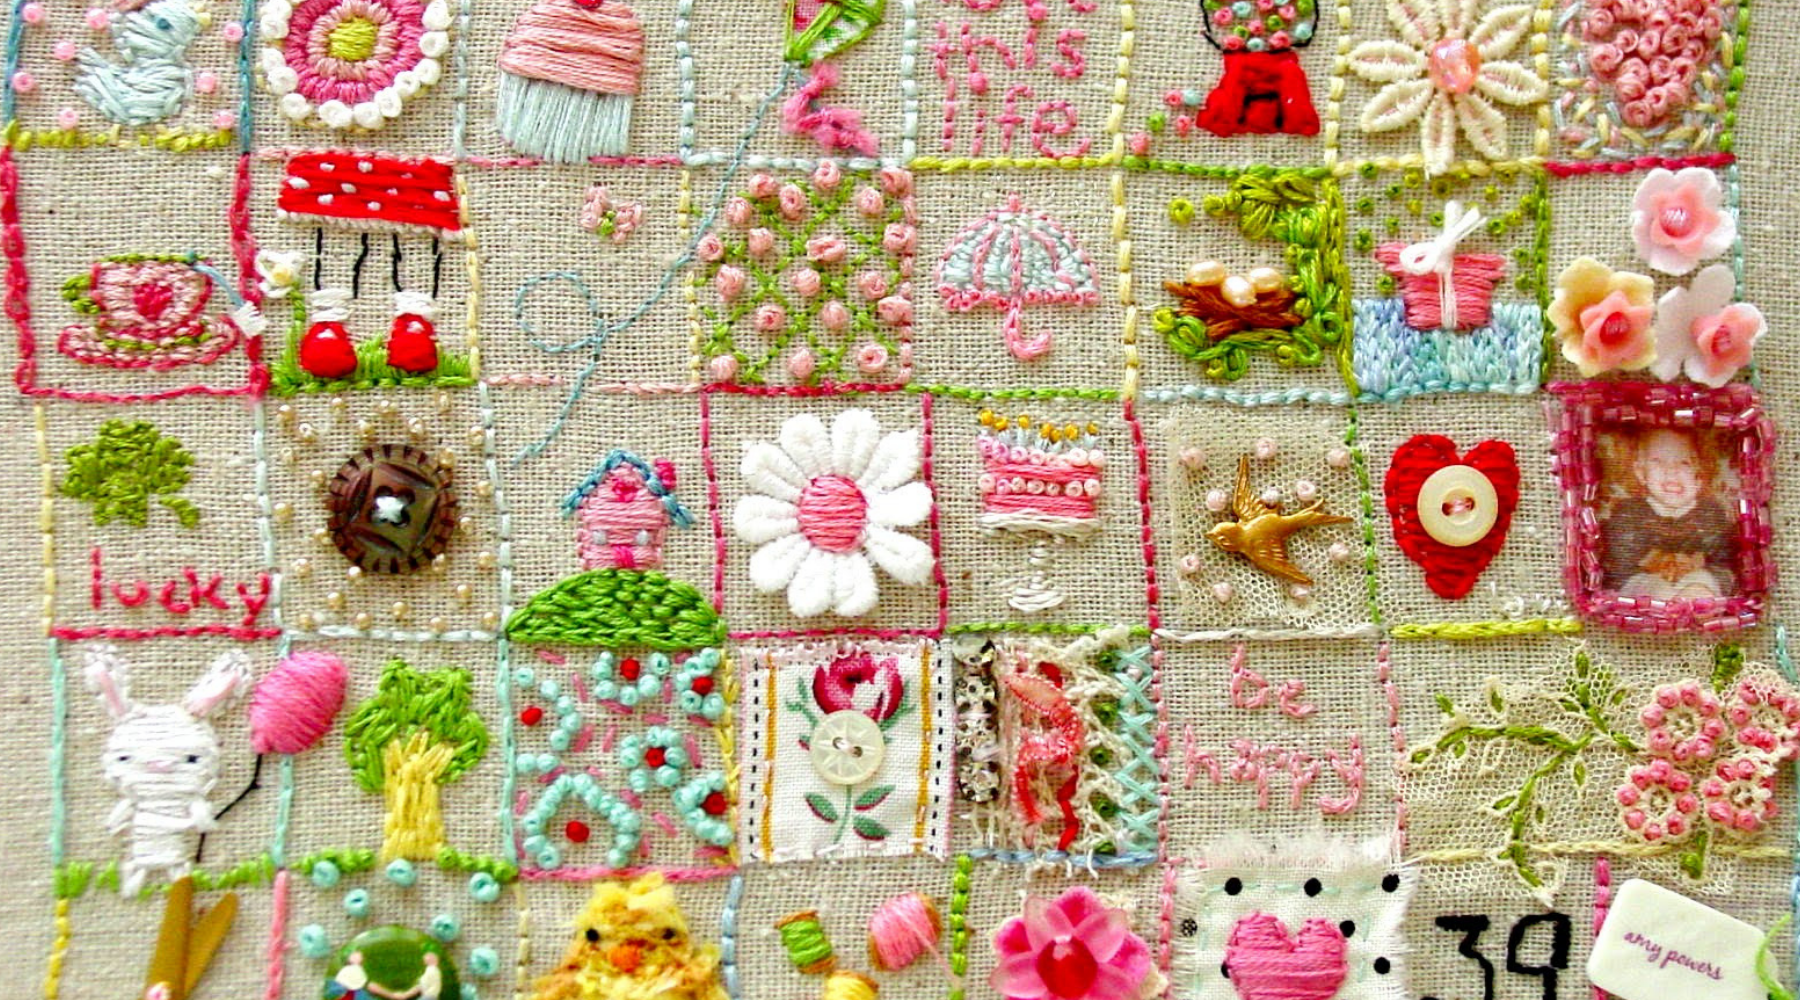 A COMPLETE List of Embroidery Blogs and Sites For Guest Posting wallpaper